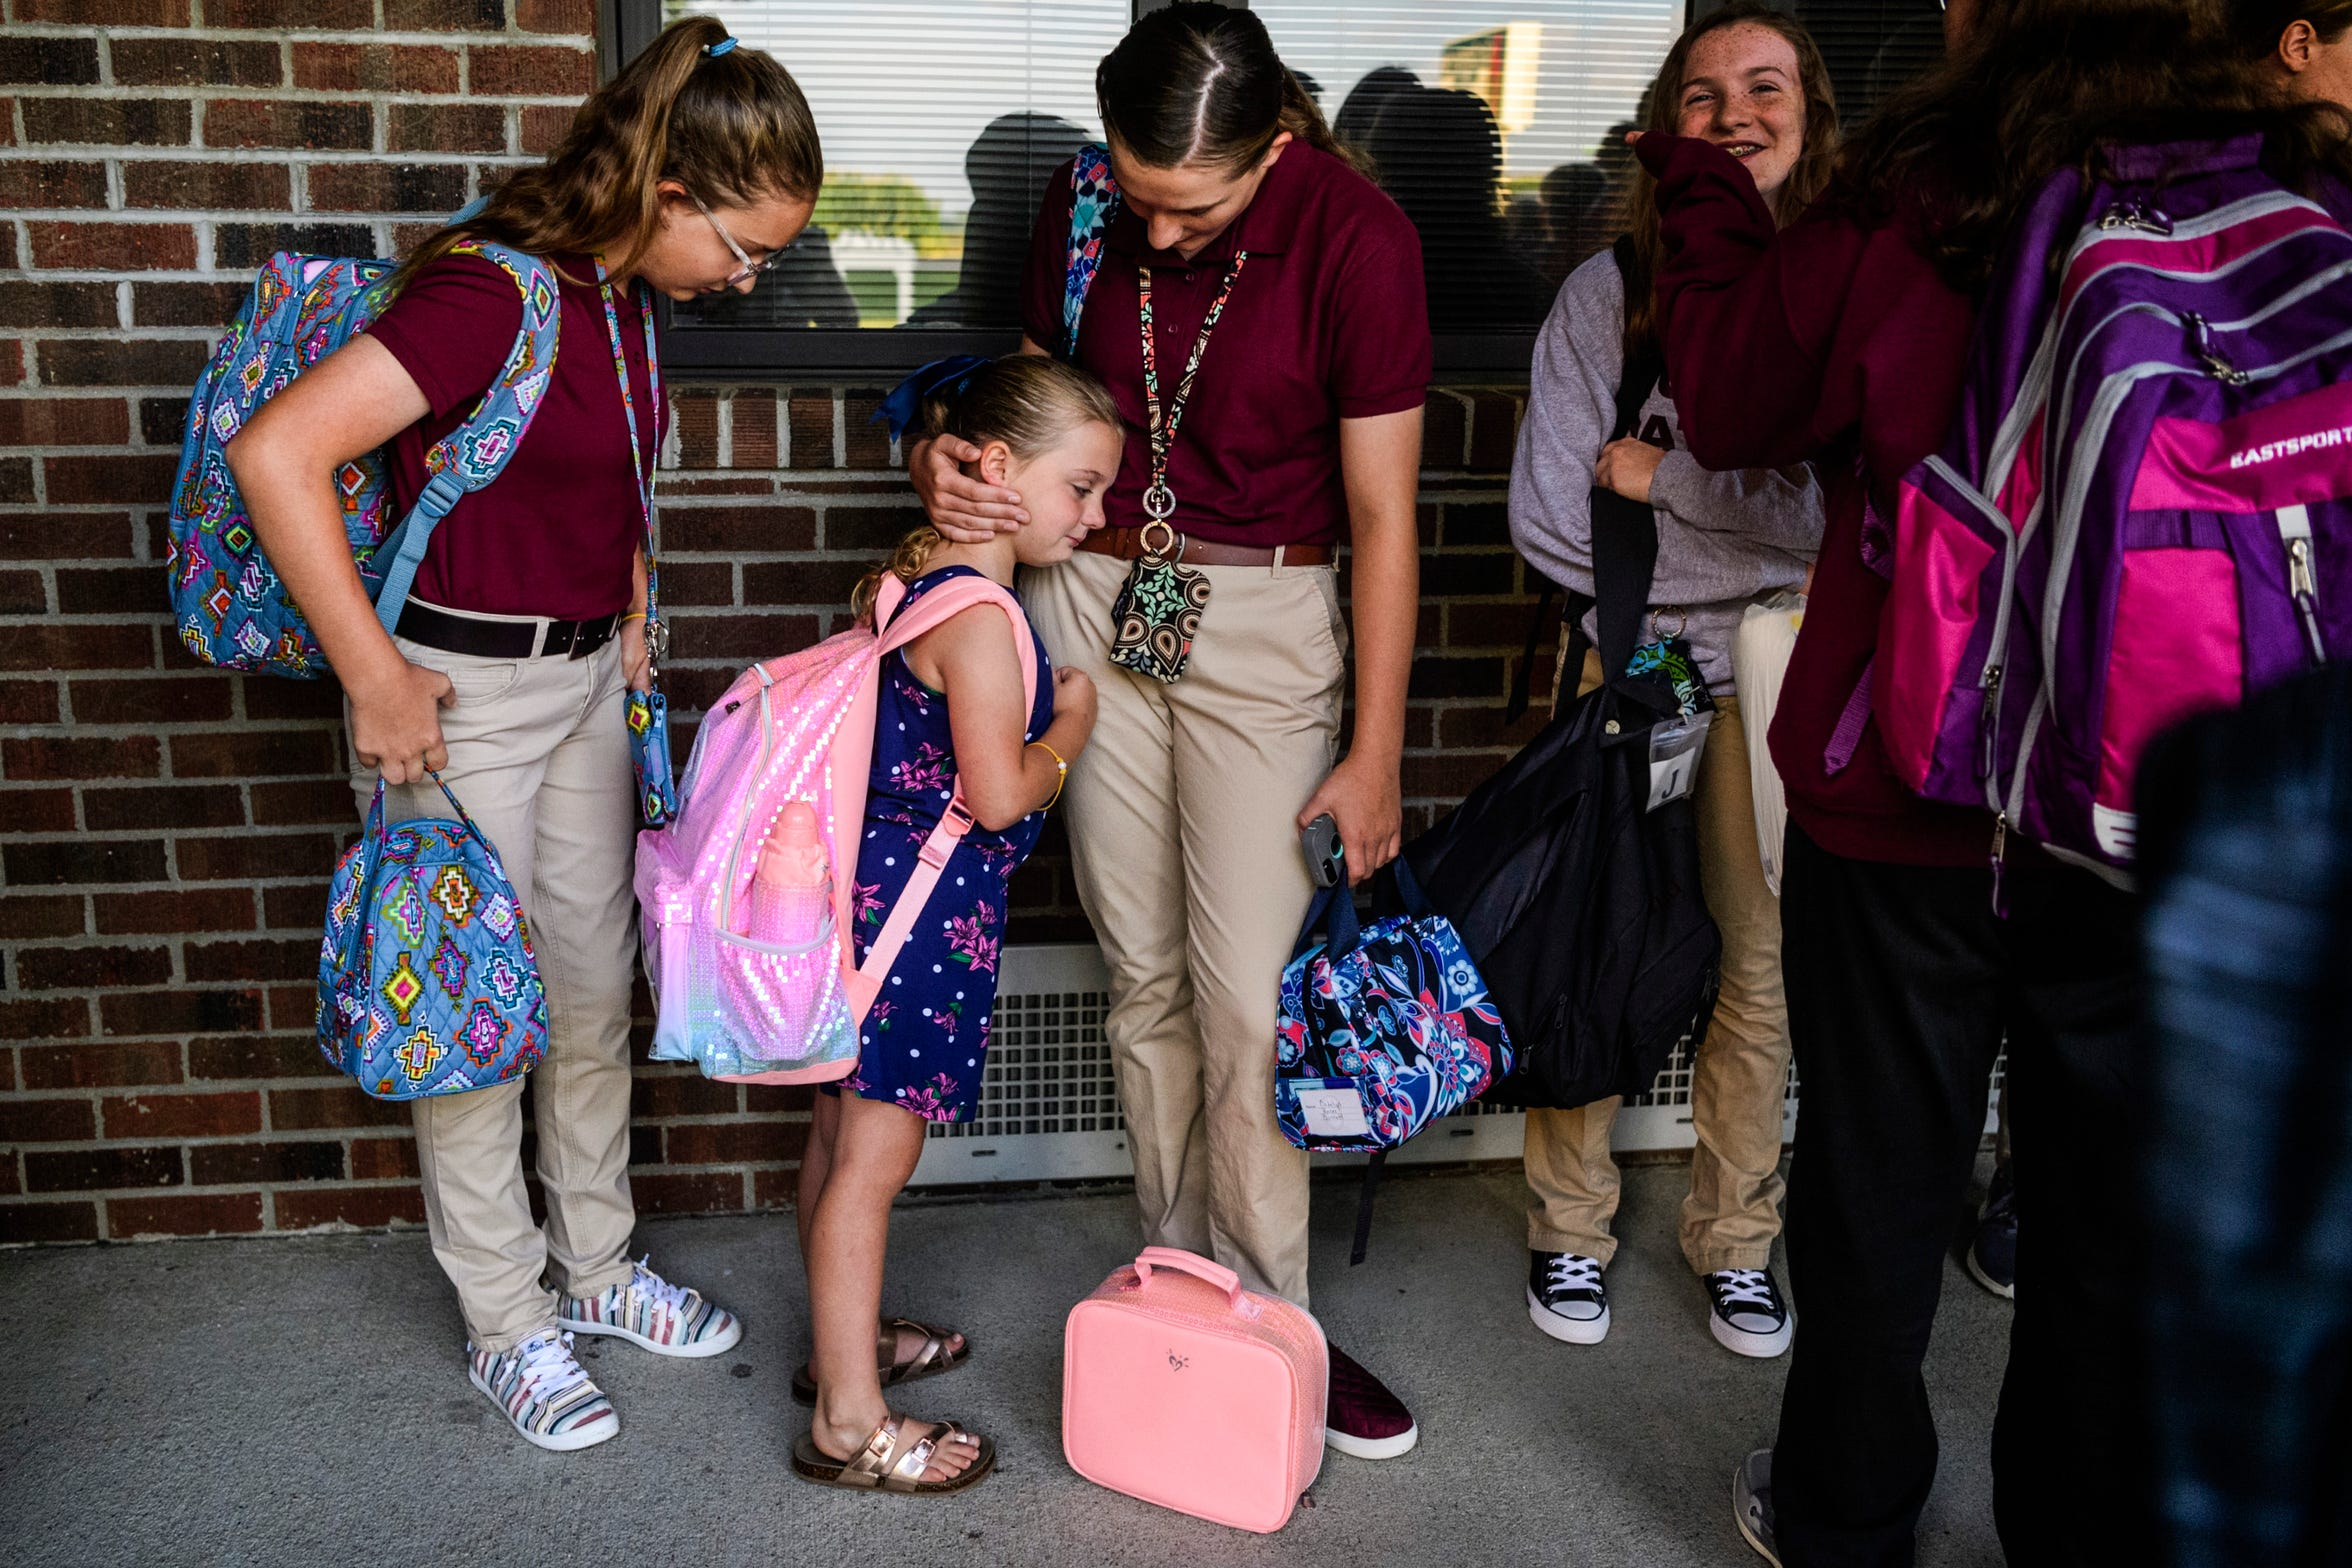 On the first day of school, Anna and Madelyn comfort Paige outside of Cairo Elementary School, where Paige attends, as they wait for a bus to take them to North Middle School Wednesday morning, Aug. 7, 2019. Paige, now a third-grader, shed a few tears when she realized she would be separated from her older sisters again after spending summer break constantly by their side.